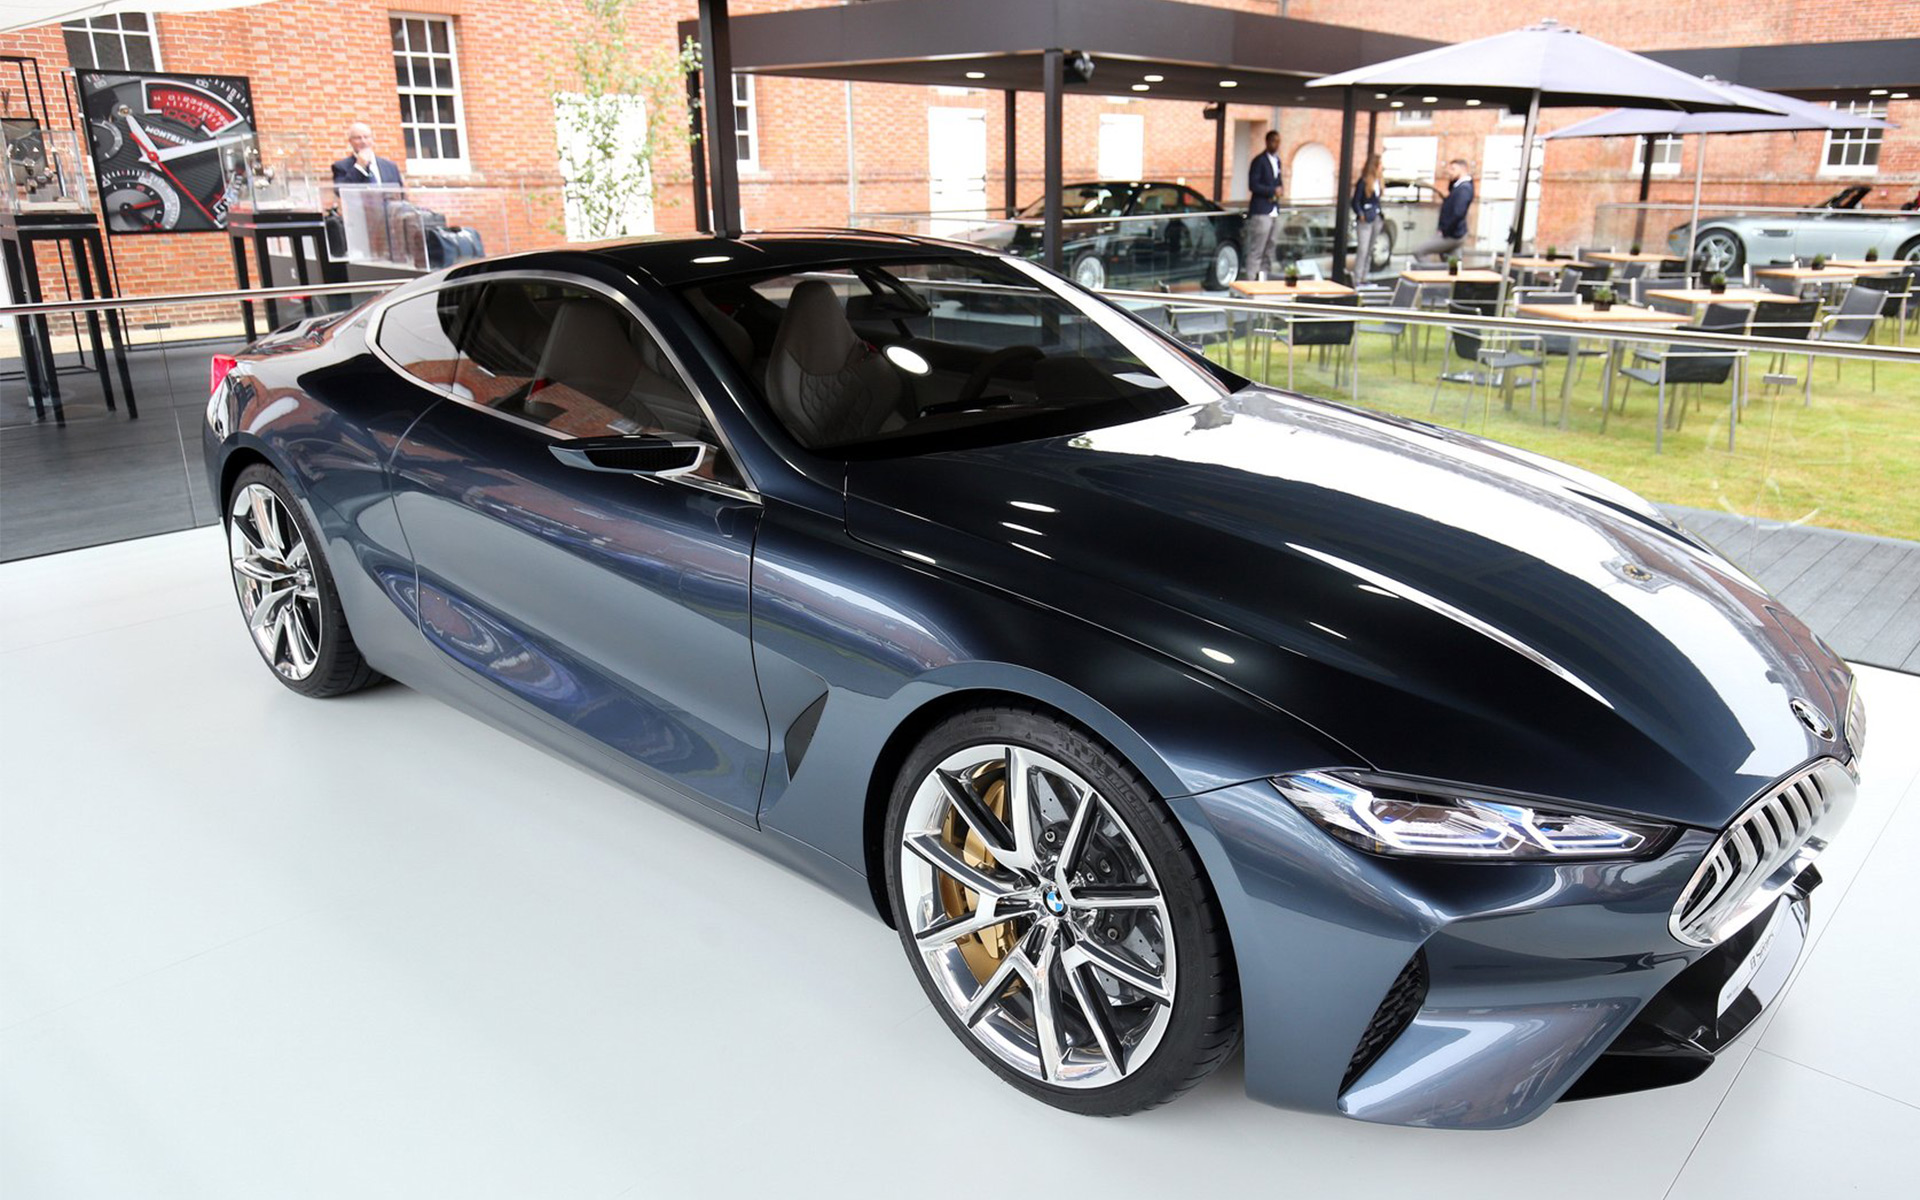 BMW, M8, Goodwood Festival of Speed